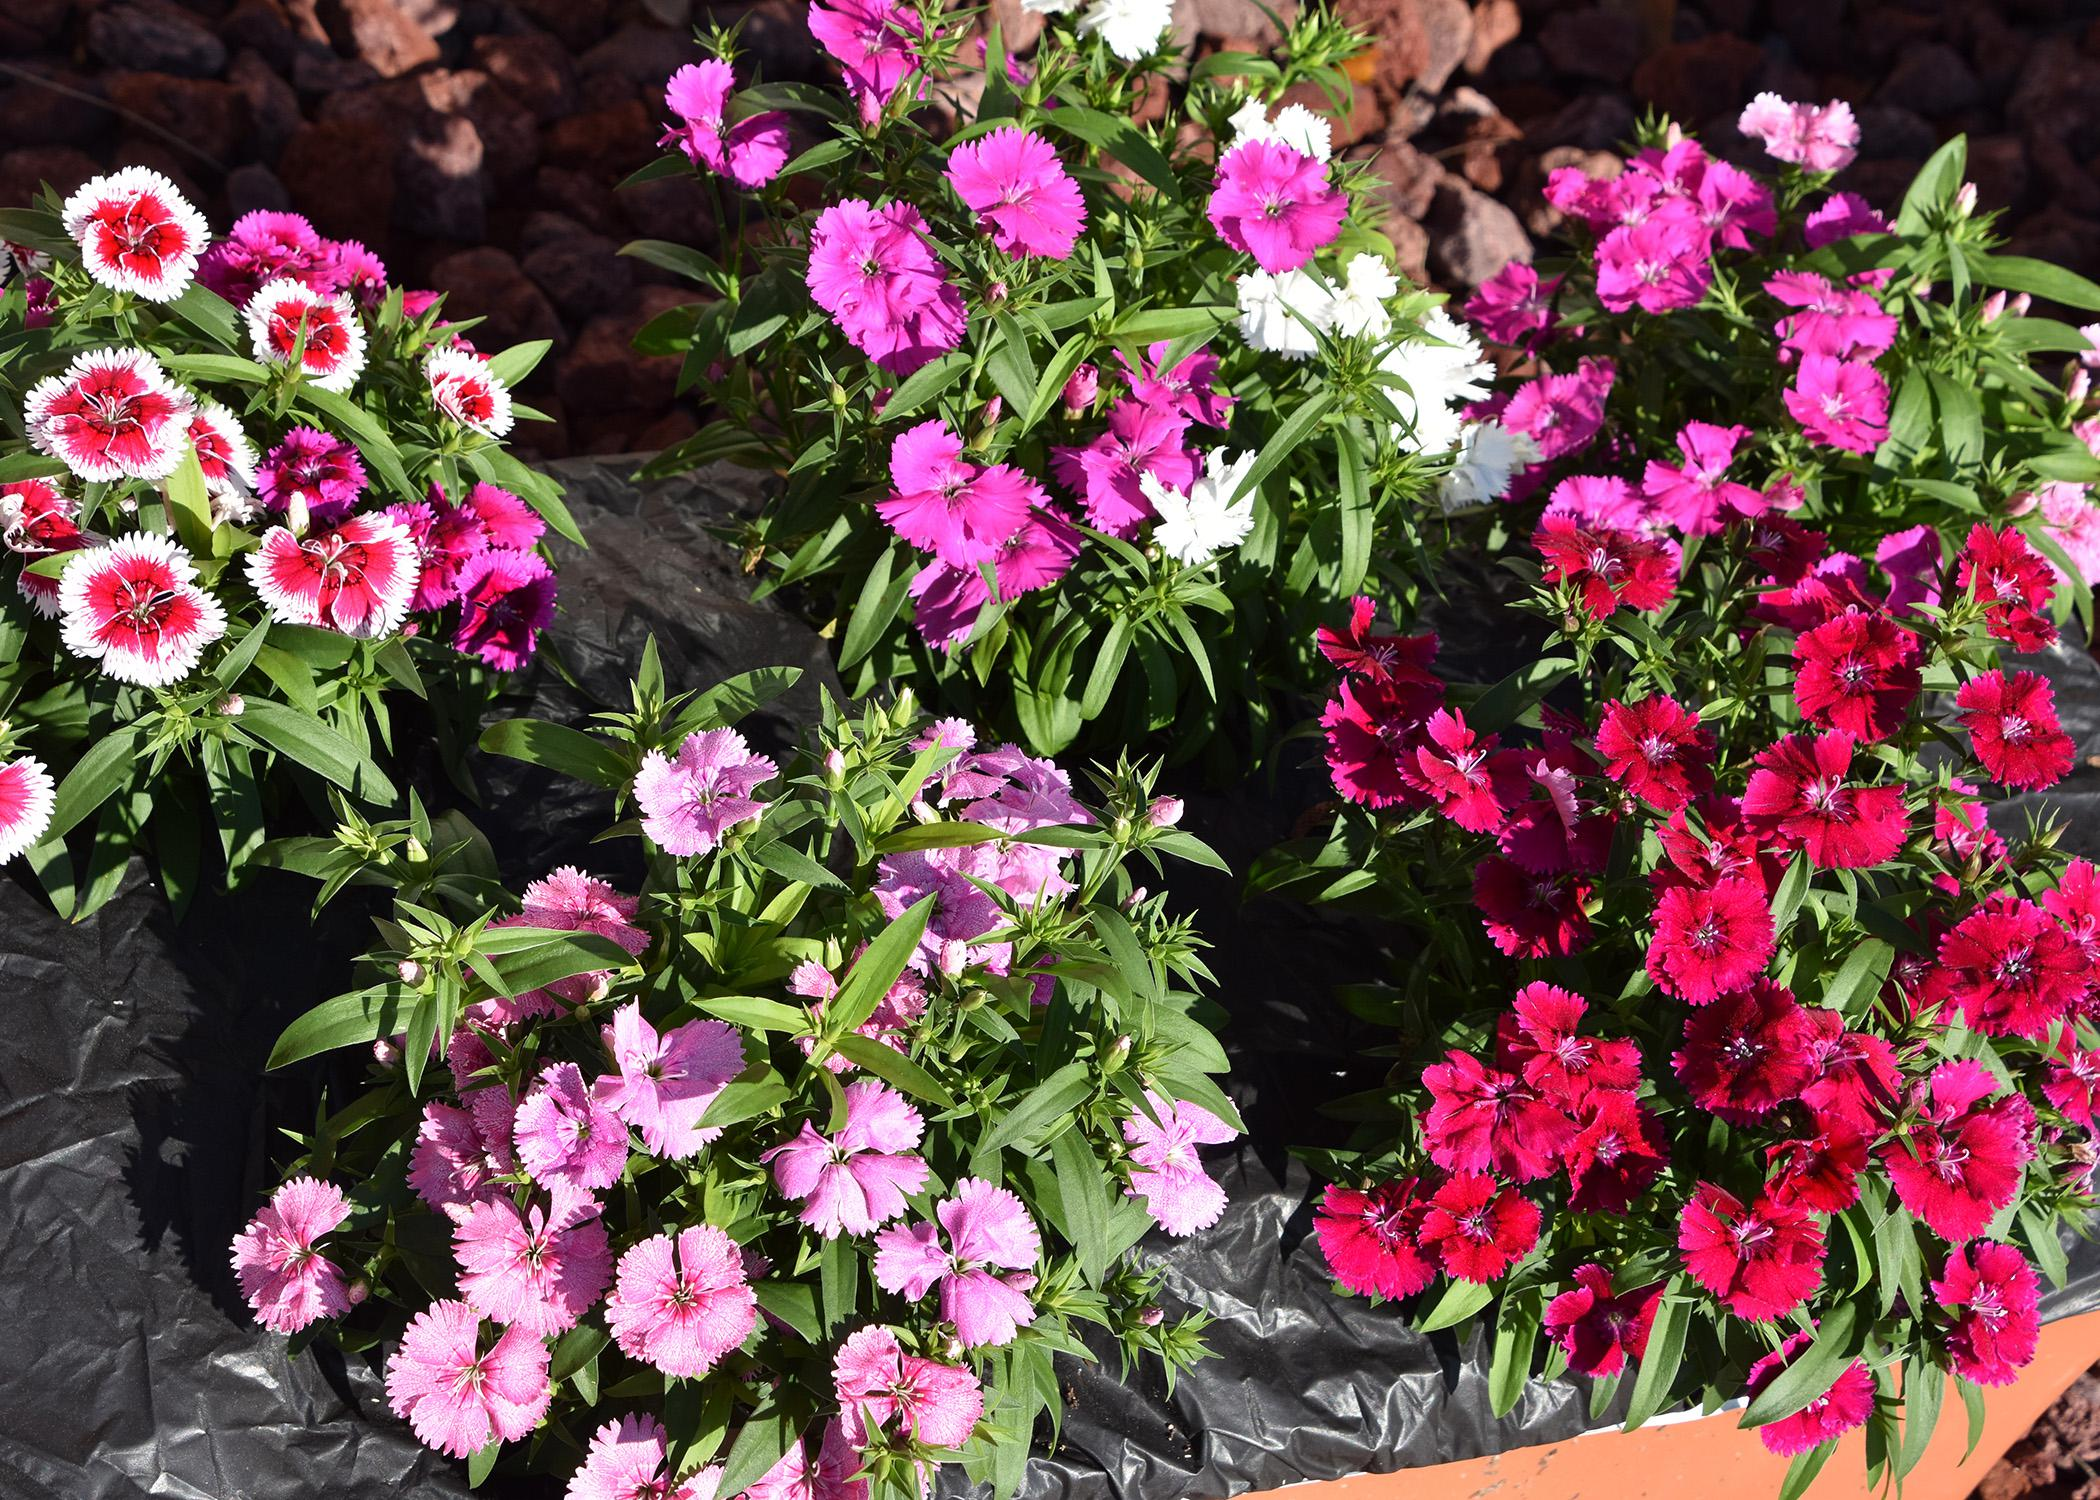 Different varieties of pink and white dianthus flowers.